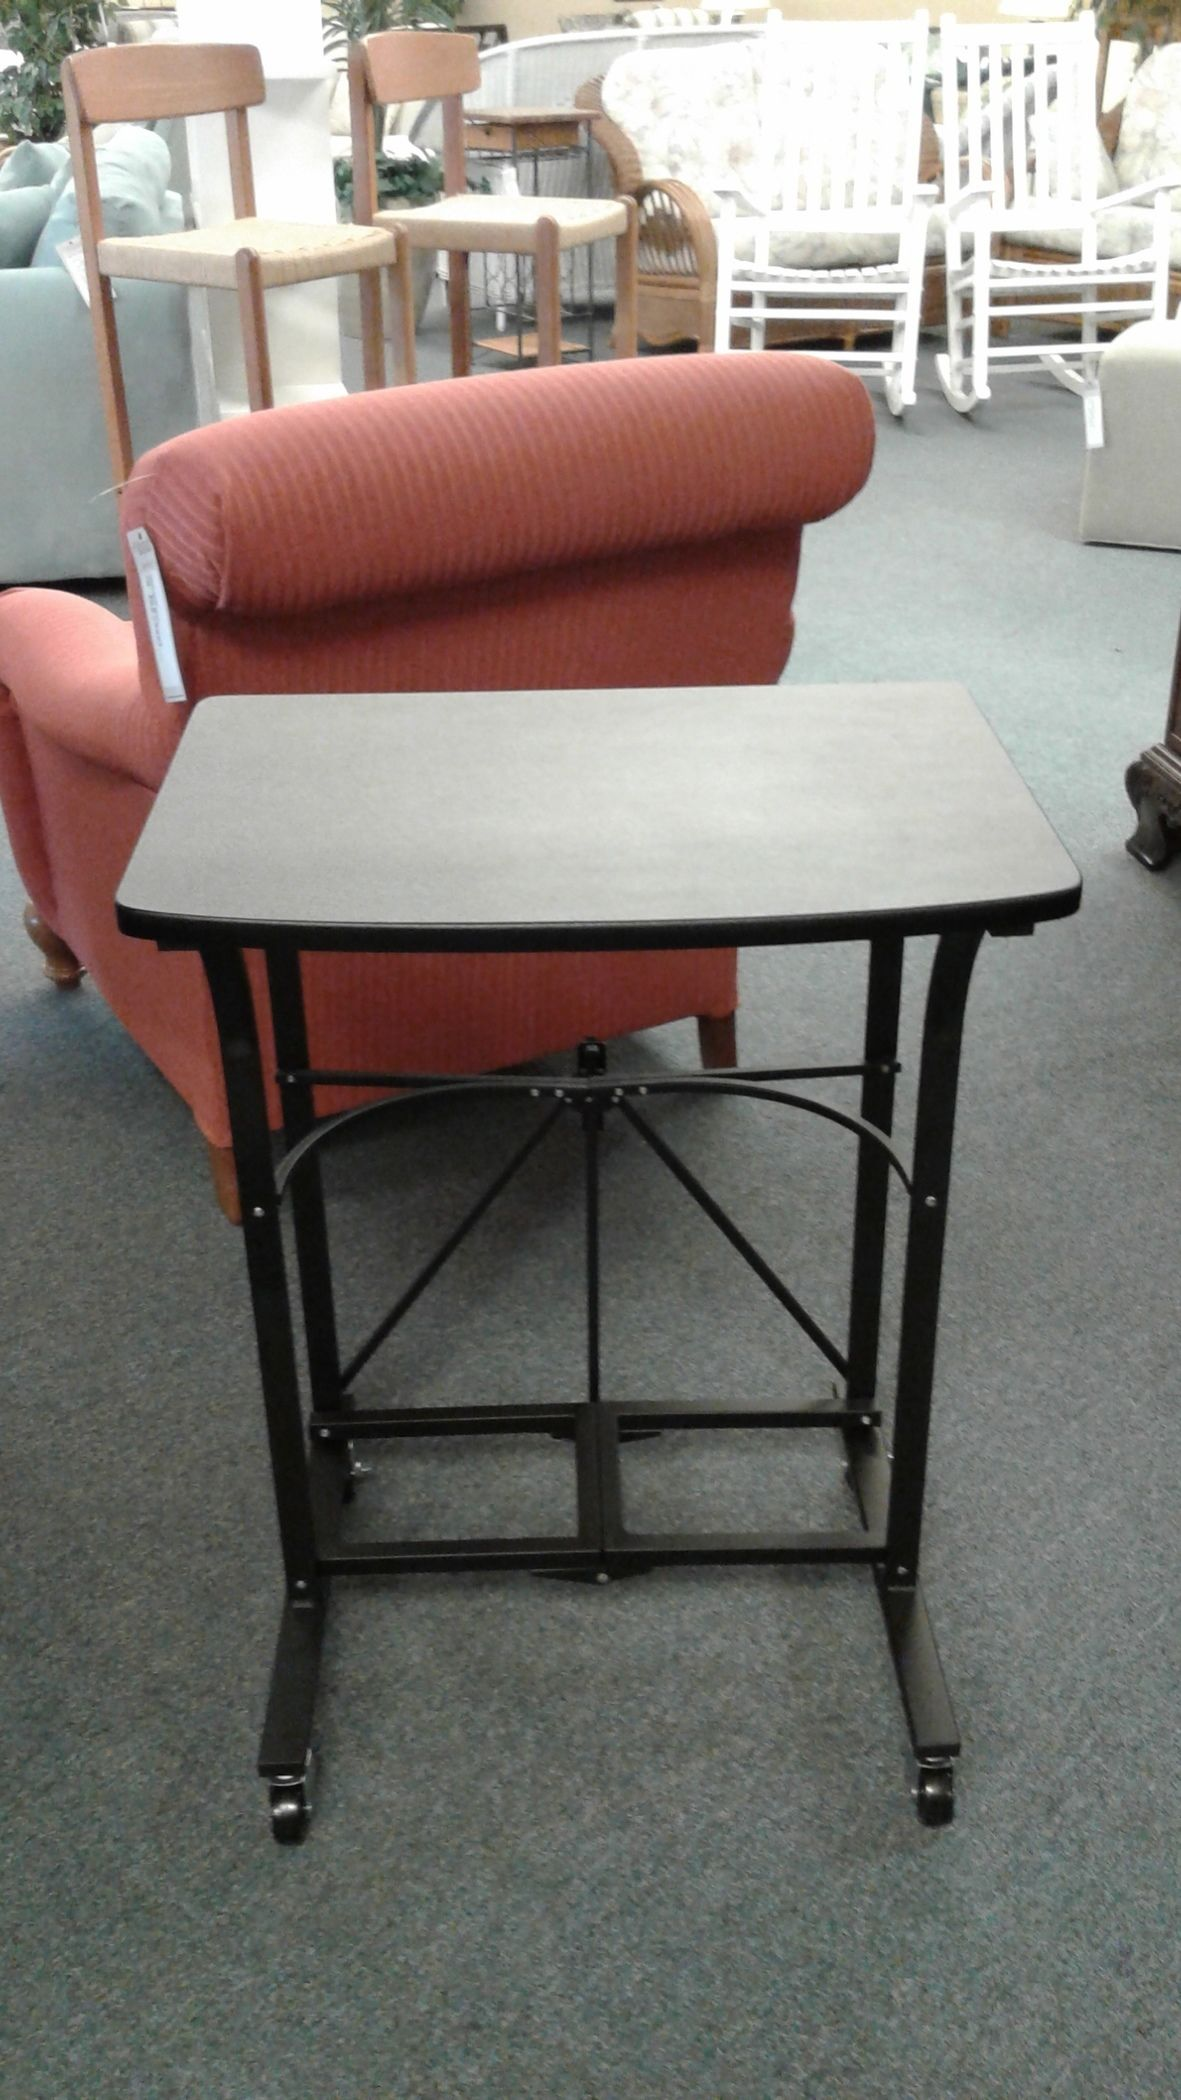 BLACK ORIGAMI FOLDING TABLE | Delmarva Furniture Consignment - photo#36